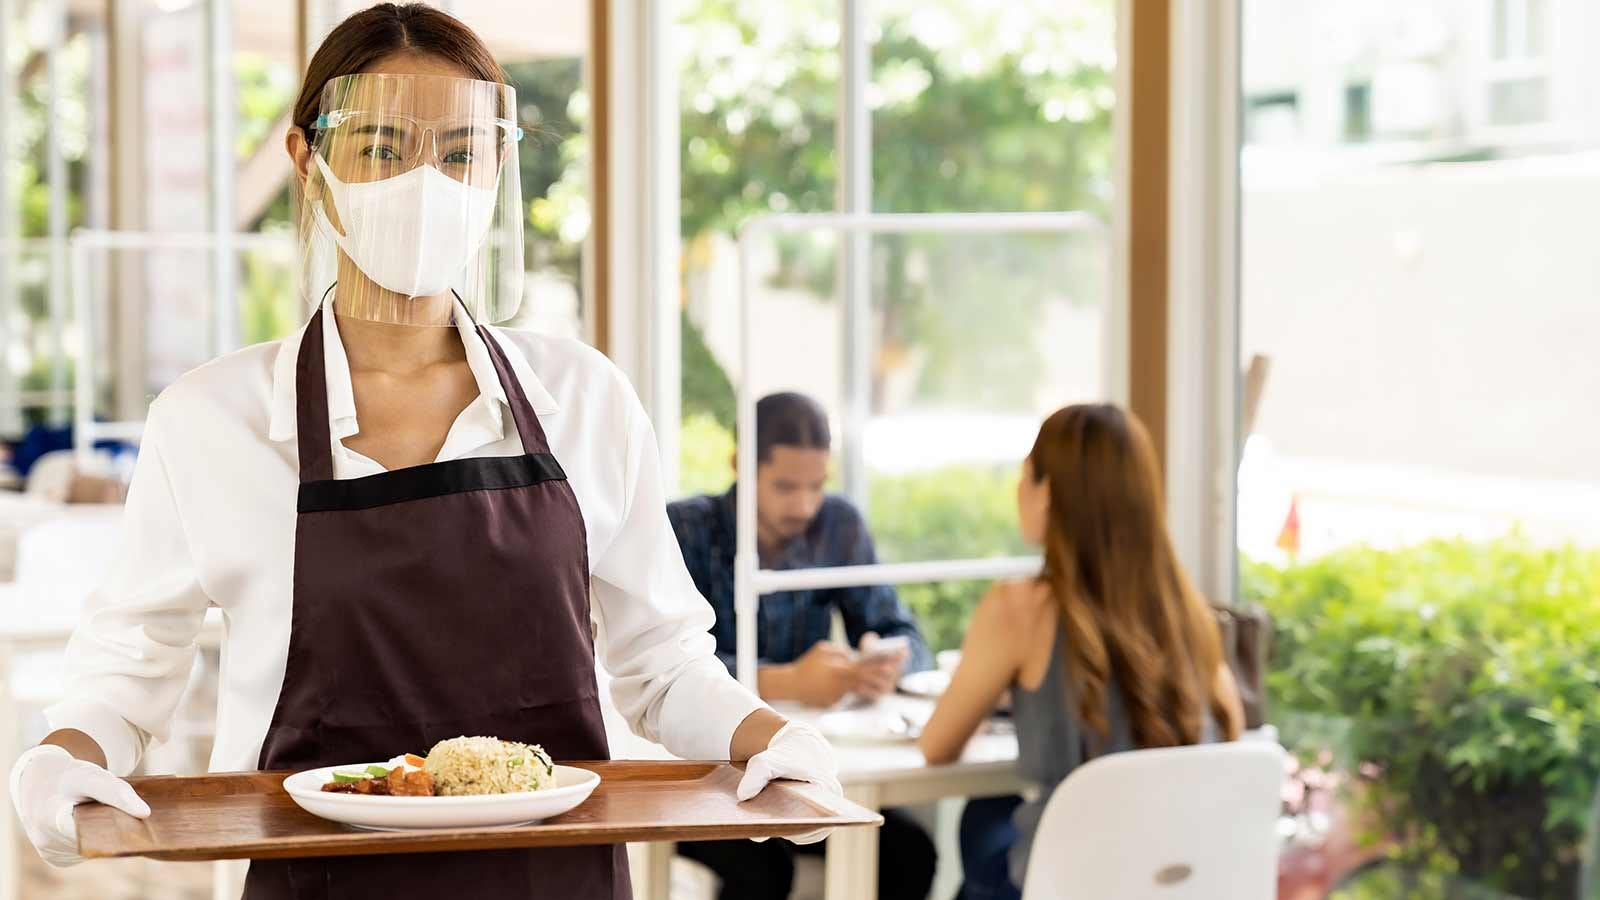 Woman serving food in a company cafeteria wearing protective equipment.